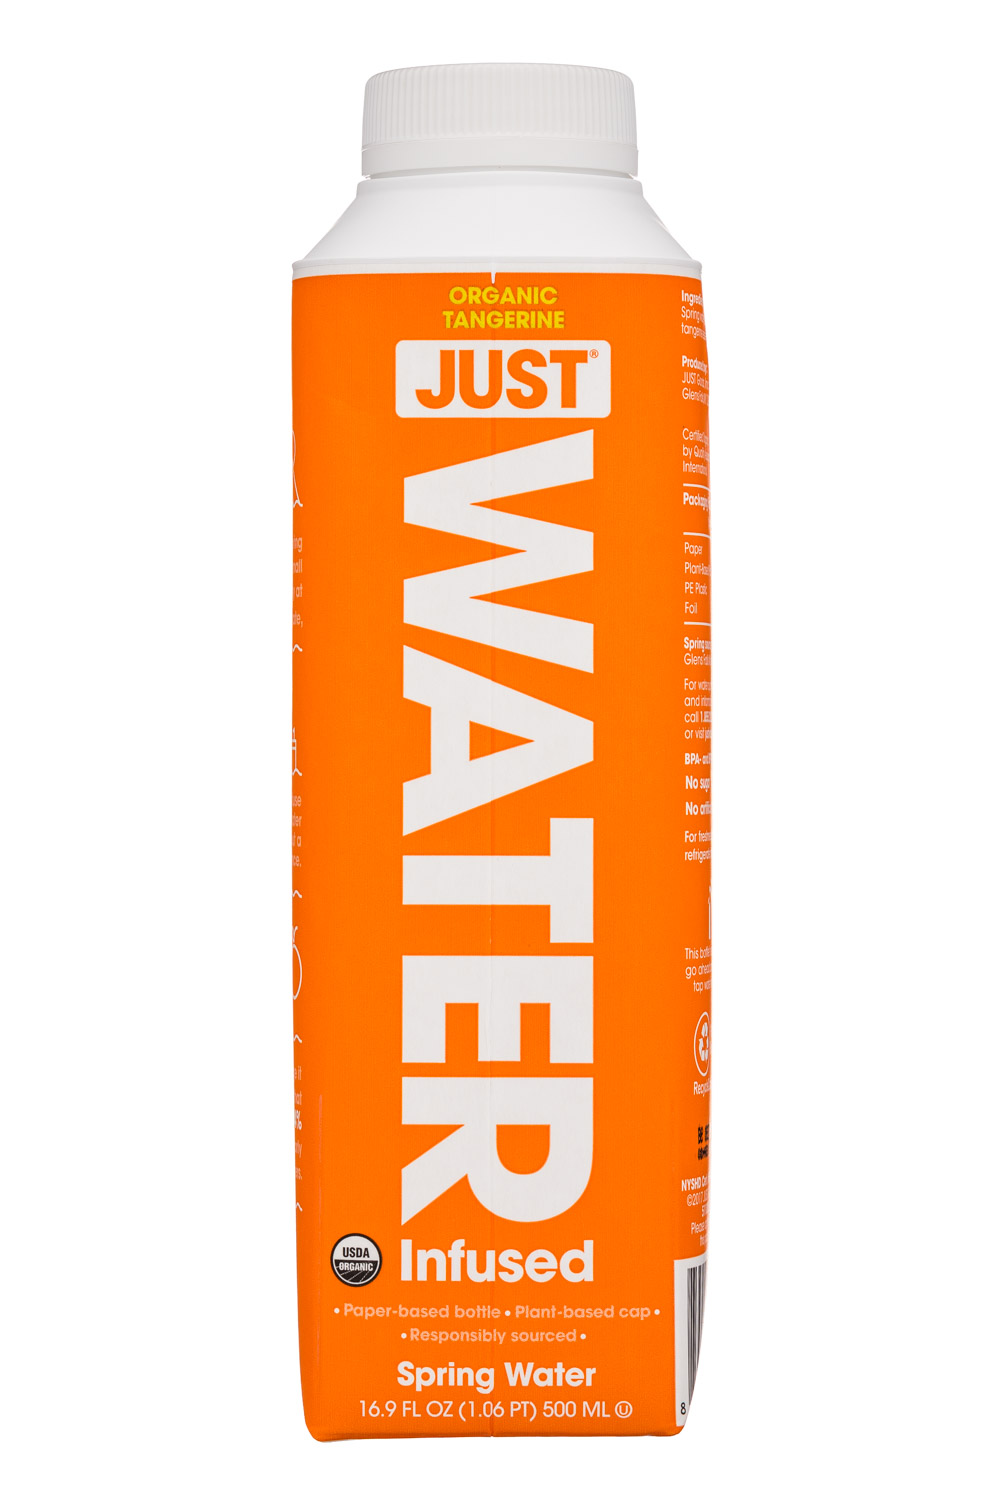 Just Water: JustWater-17oz-Tangerine-Front